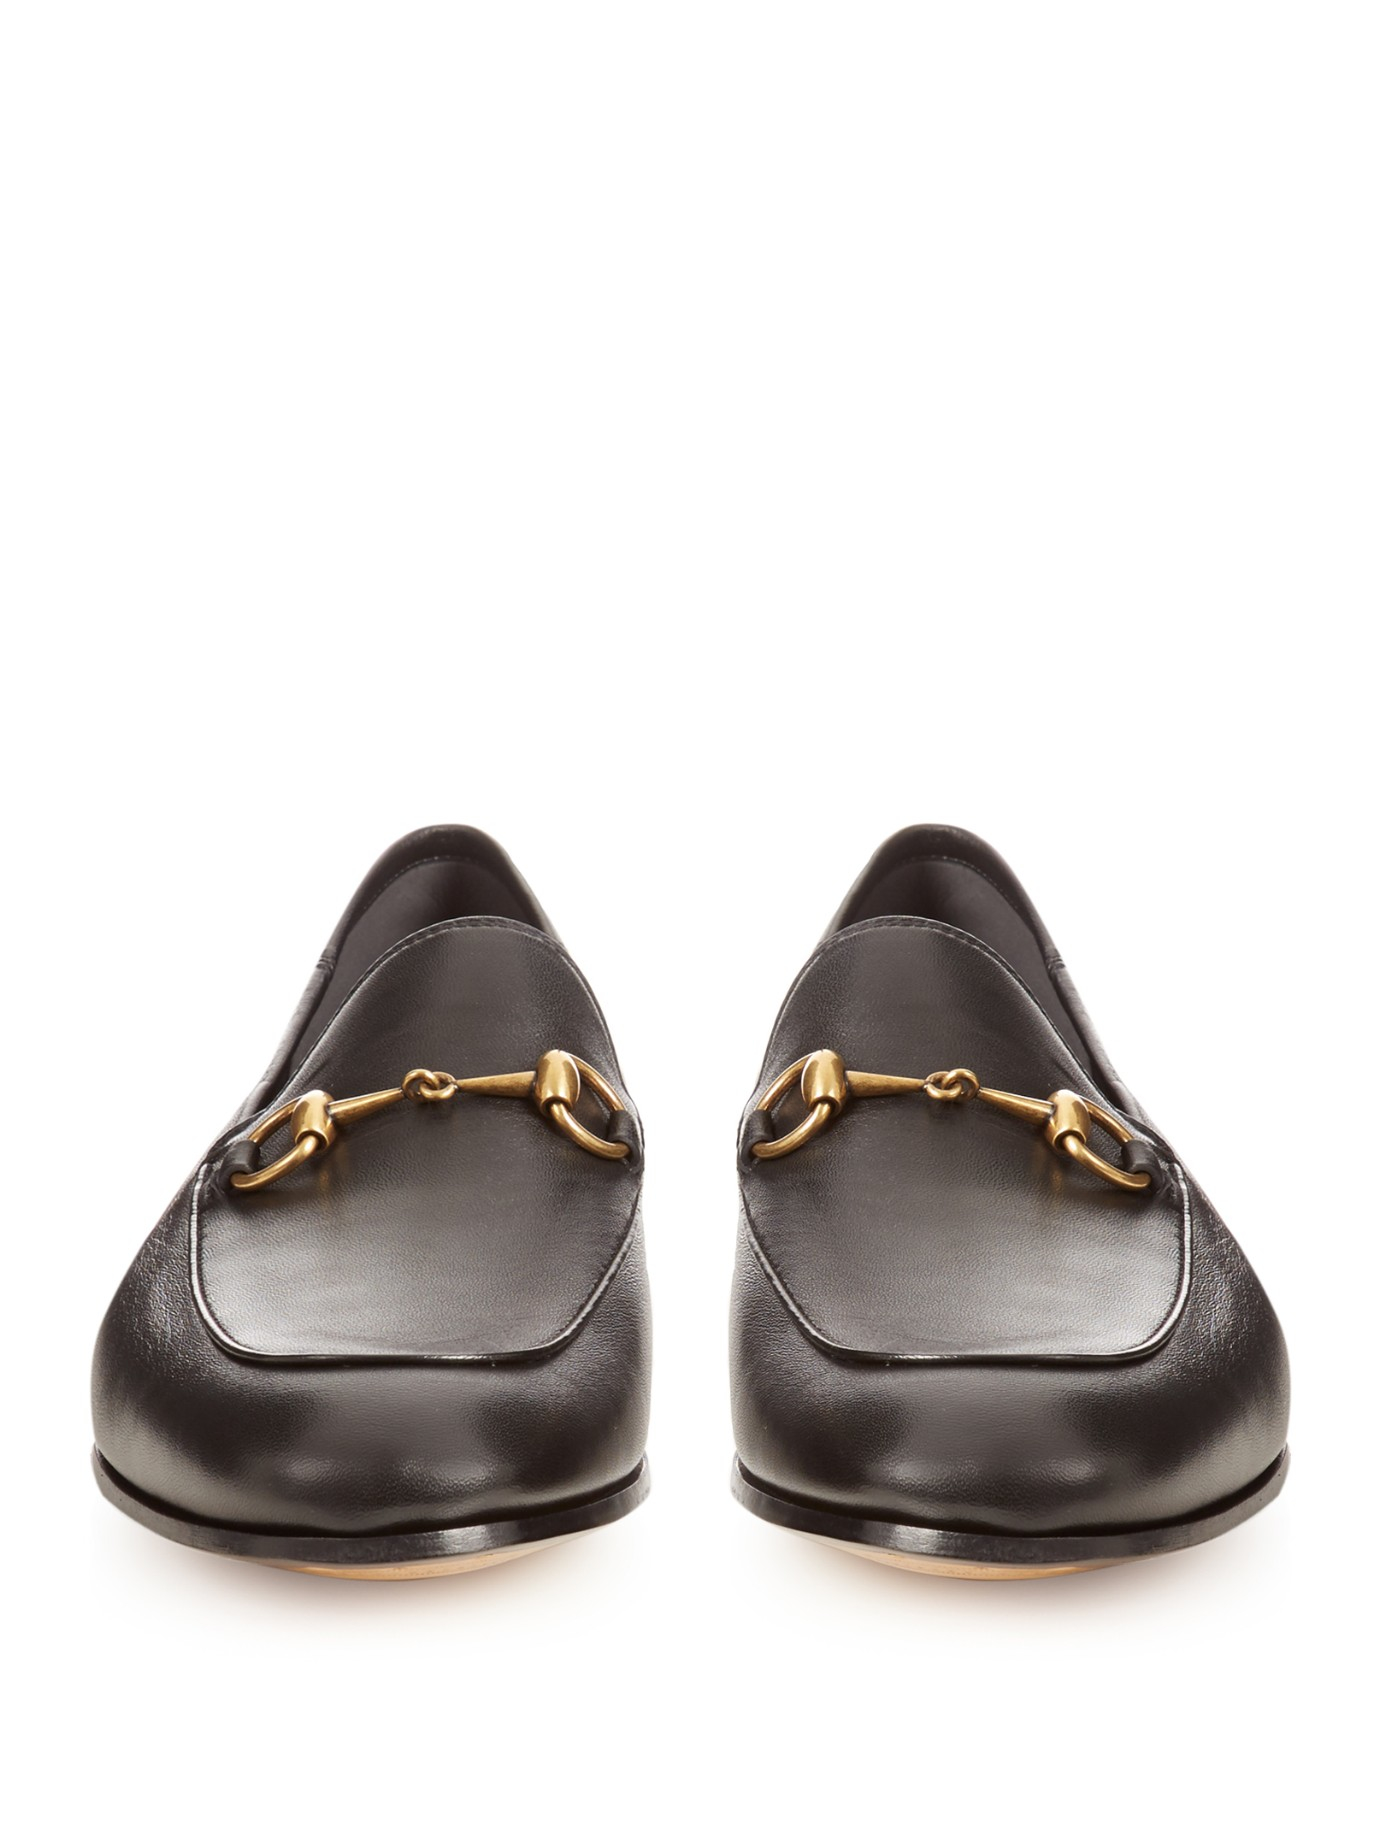 cbd889f9432 Gucci Brixton Leather Loafers in Black for Men - Lyst